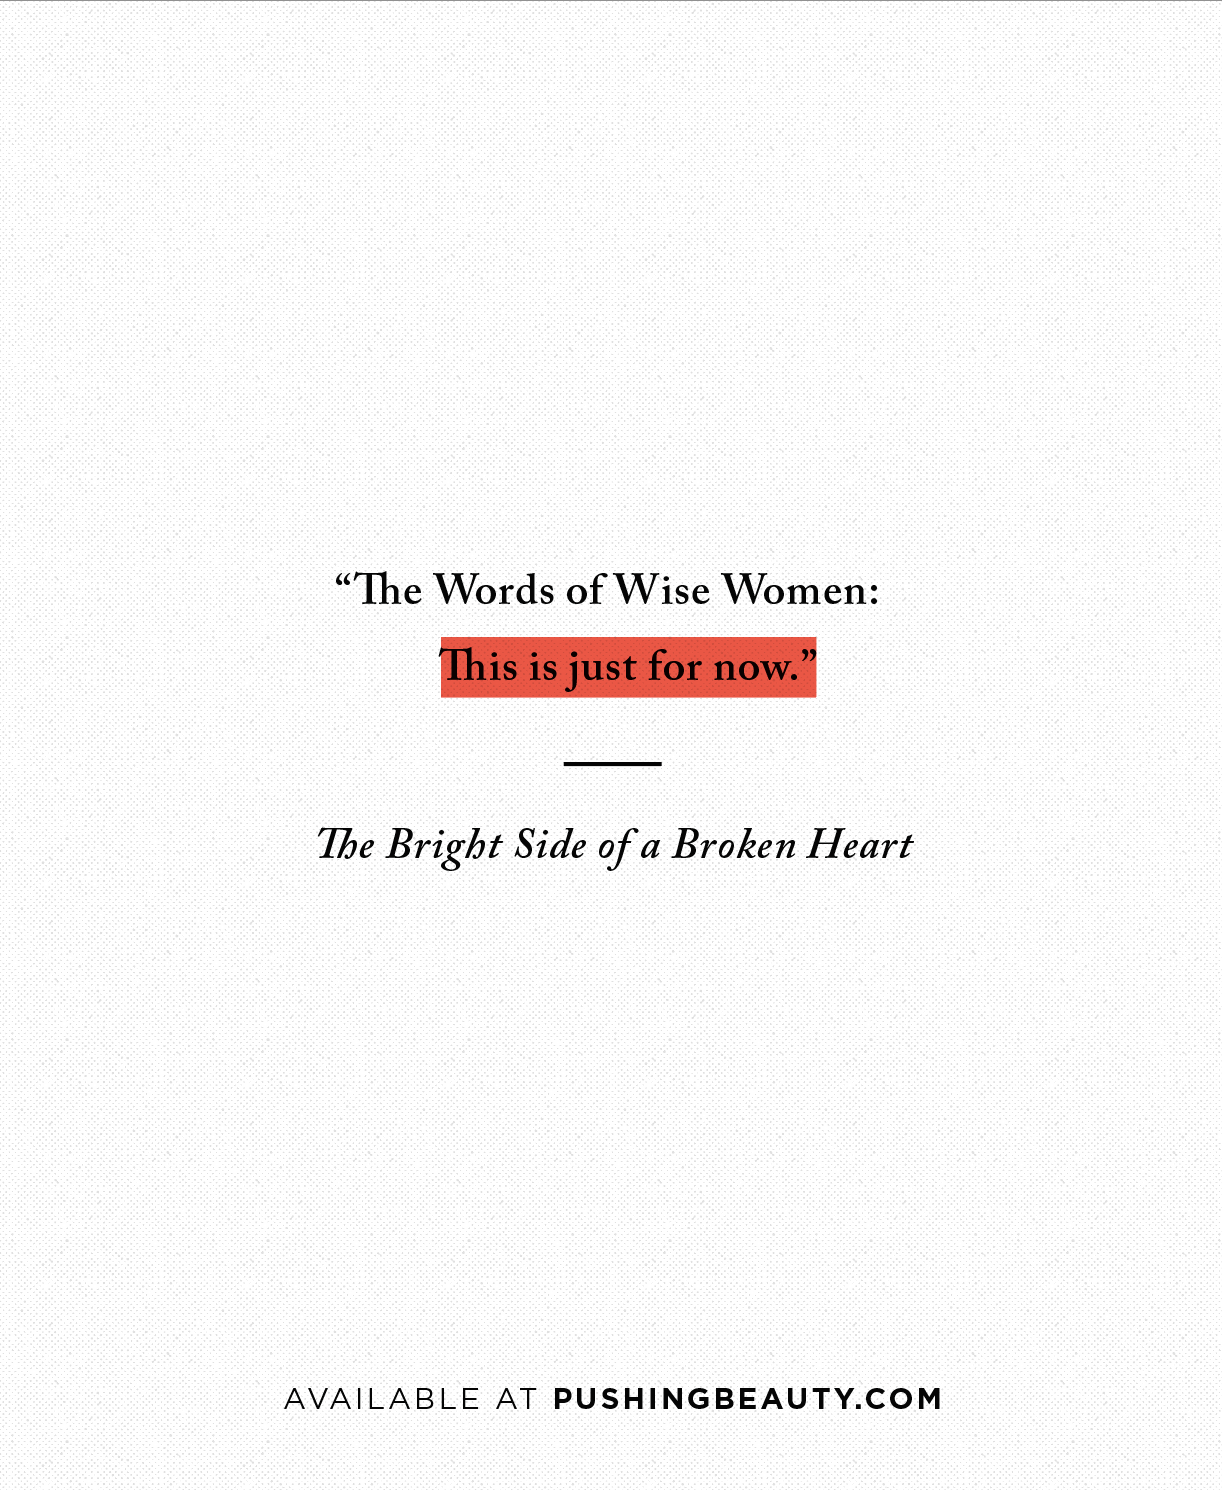 The Bright Side of a Broken Heart Quote